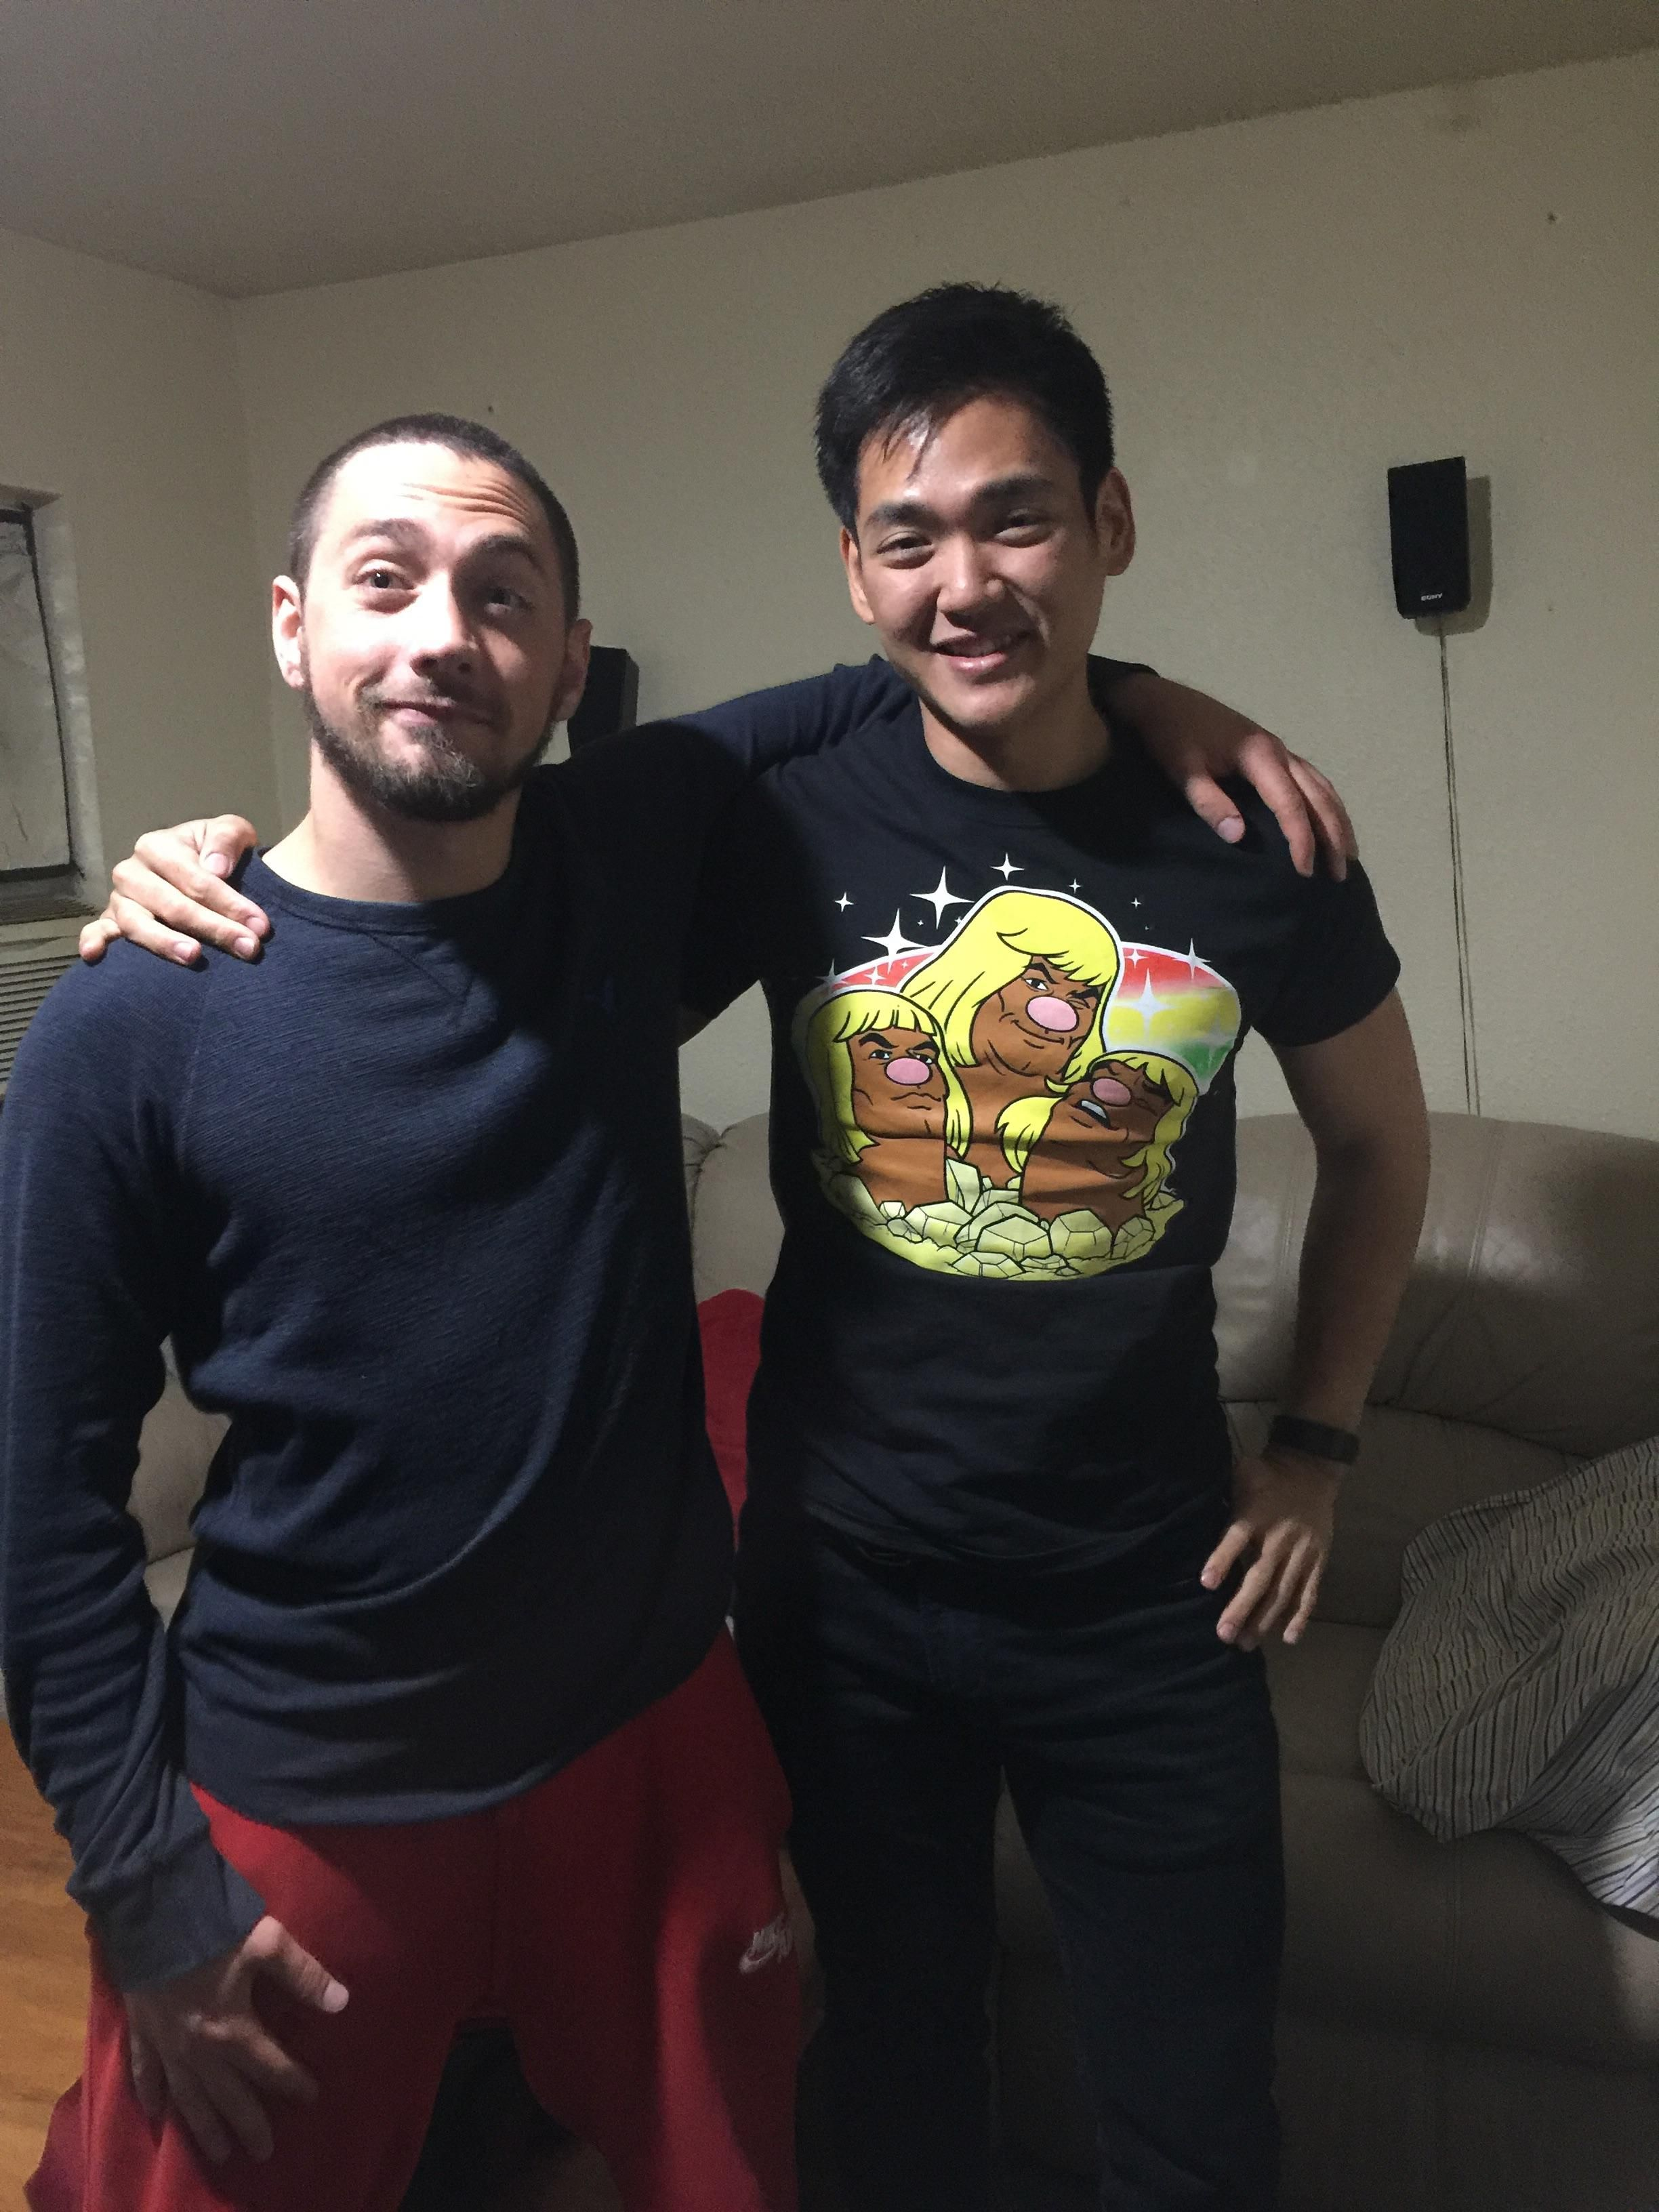 My bro and I met on Warcraft 3 in 2005; we've been friends since and stayed in contact. We finally met last night when I heard he was in my city!